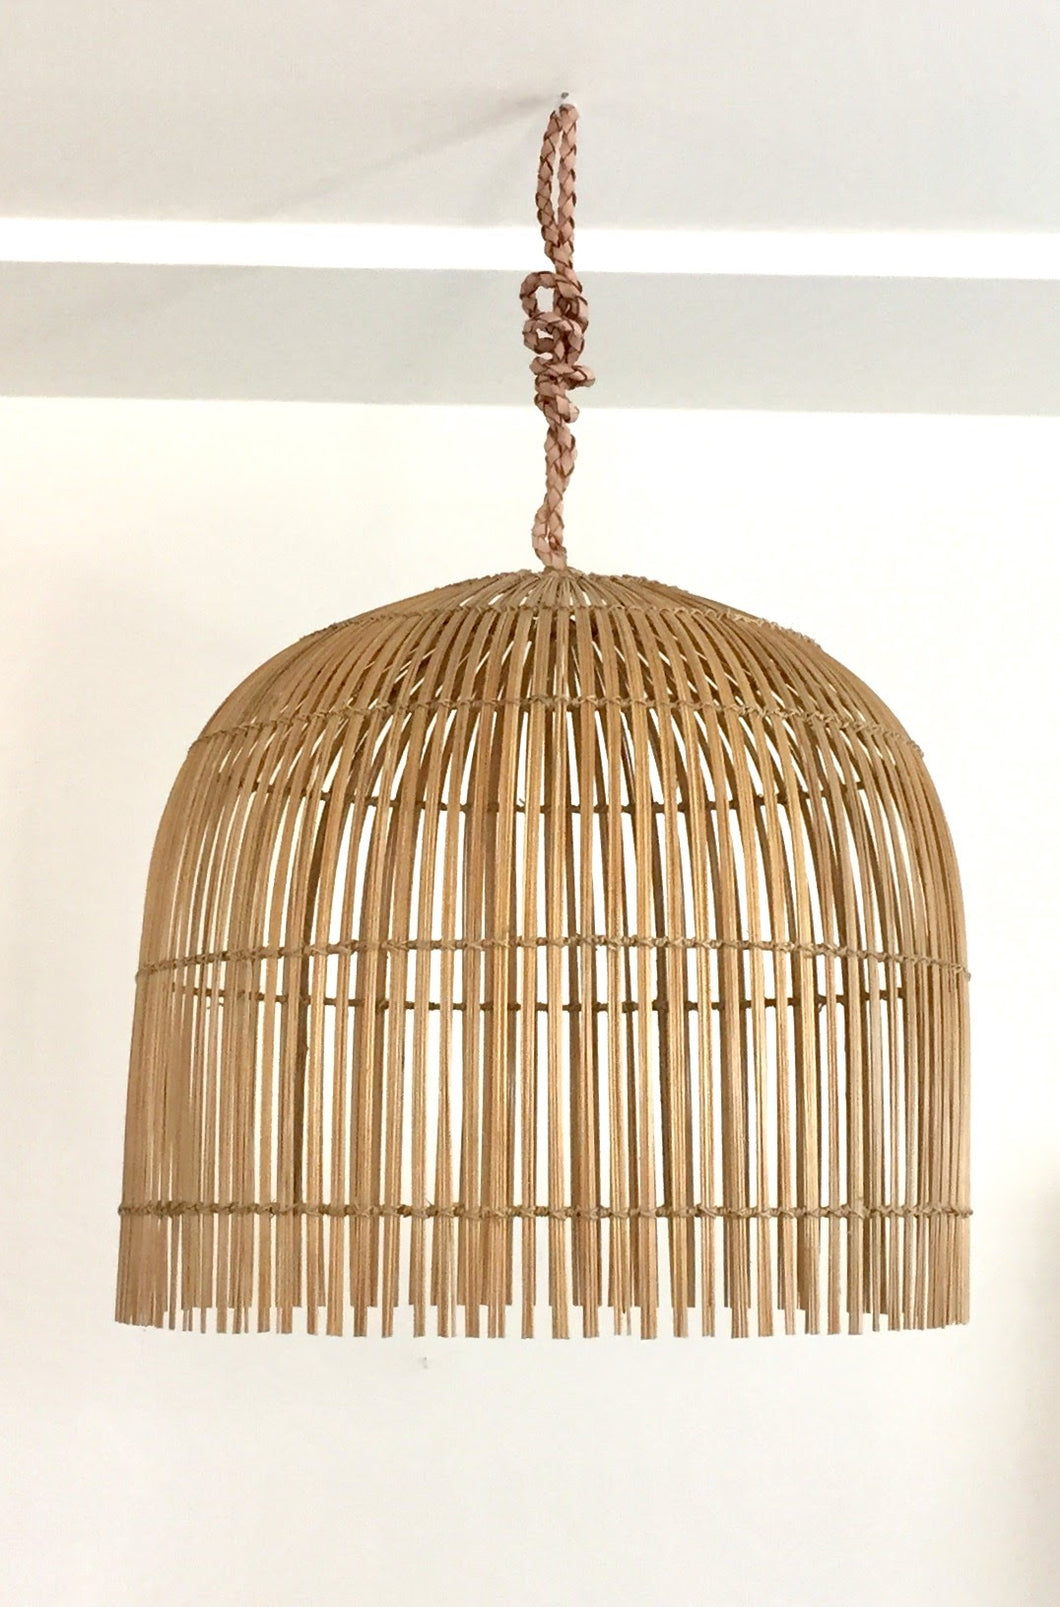 Bamboo lamp shade with leather strap btikboho bamboo lamp shade with leather strap mozeypictures Gallery